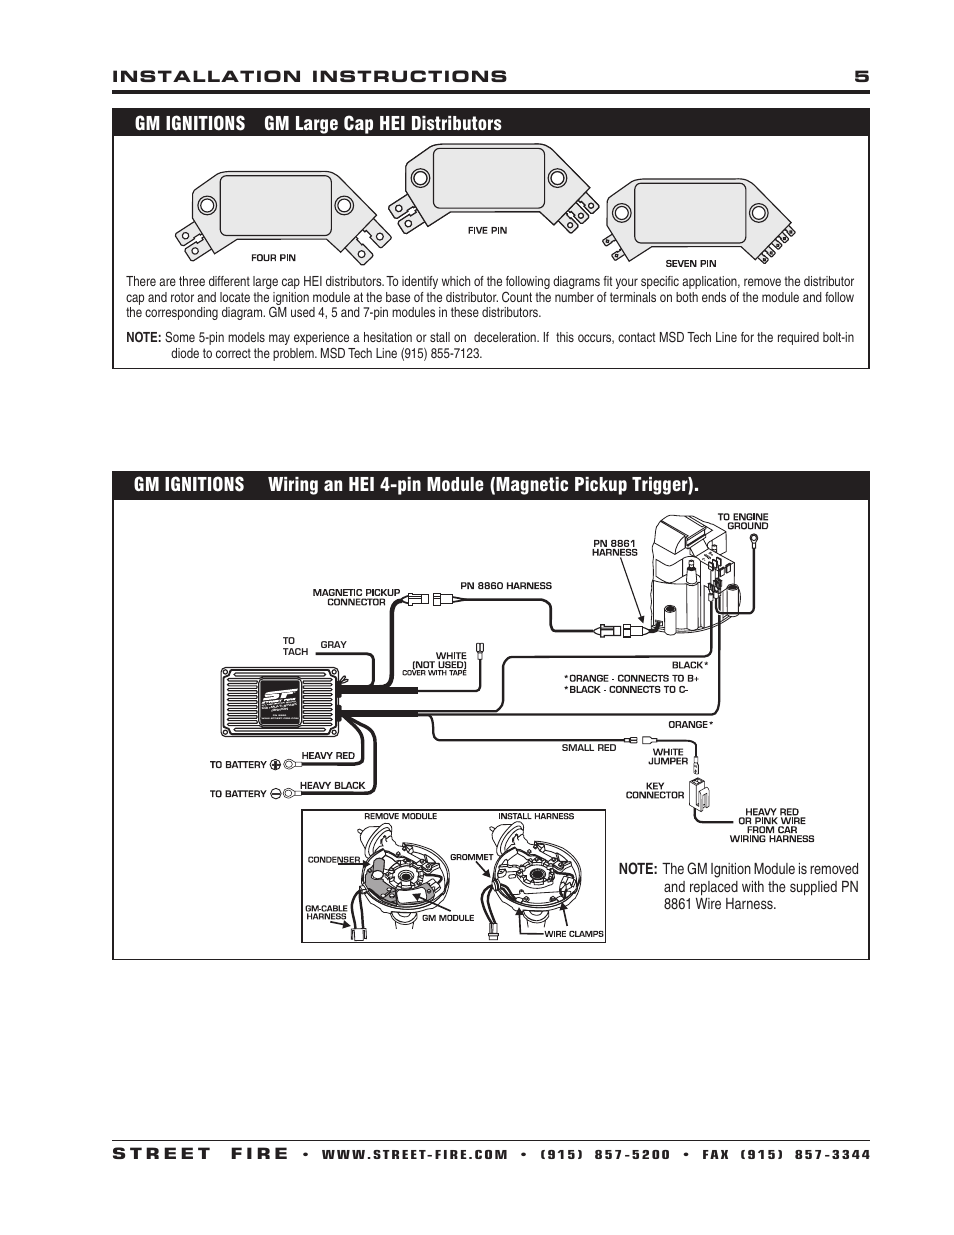 Gm ignitions gm large cap hei distributors | MSD 5520 Street Fire Ignition  Control Installation User Manual | Page 5 / 12